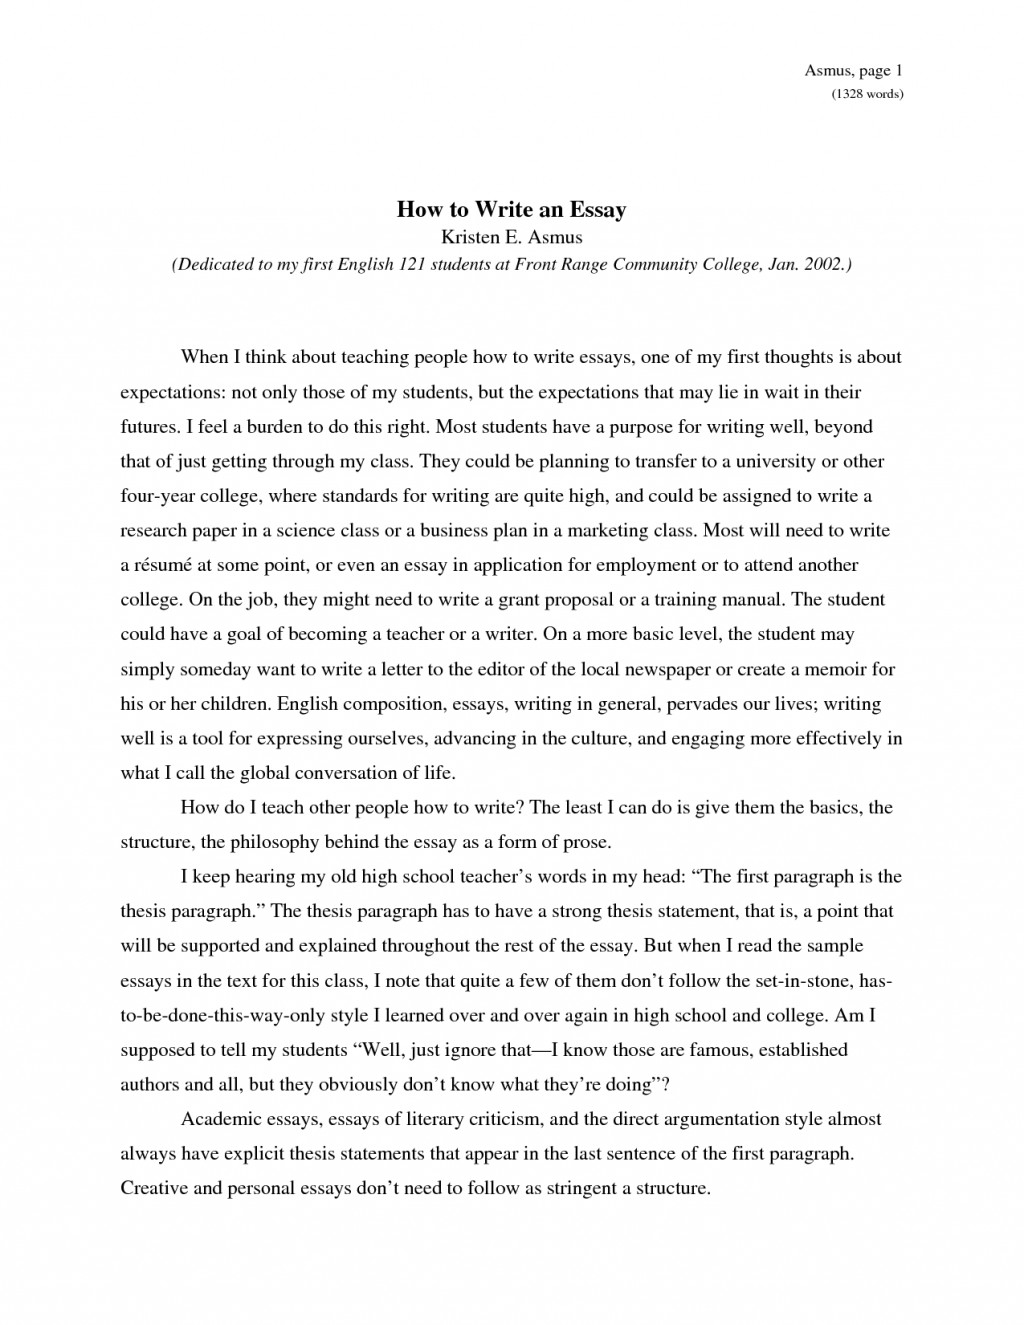 007 Easy Way To Write An Essay Example The Correct Composition Classroom How Correctly Time In Obfuscata L Paper Movie Title English Numbers Structure Excellent Argumentative Analytical Ielts Task 2 Large